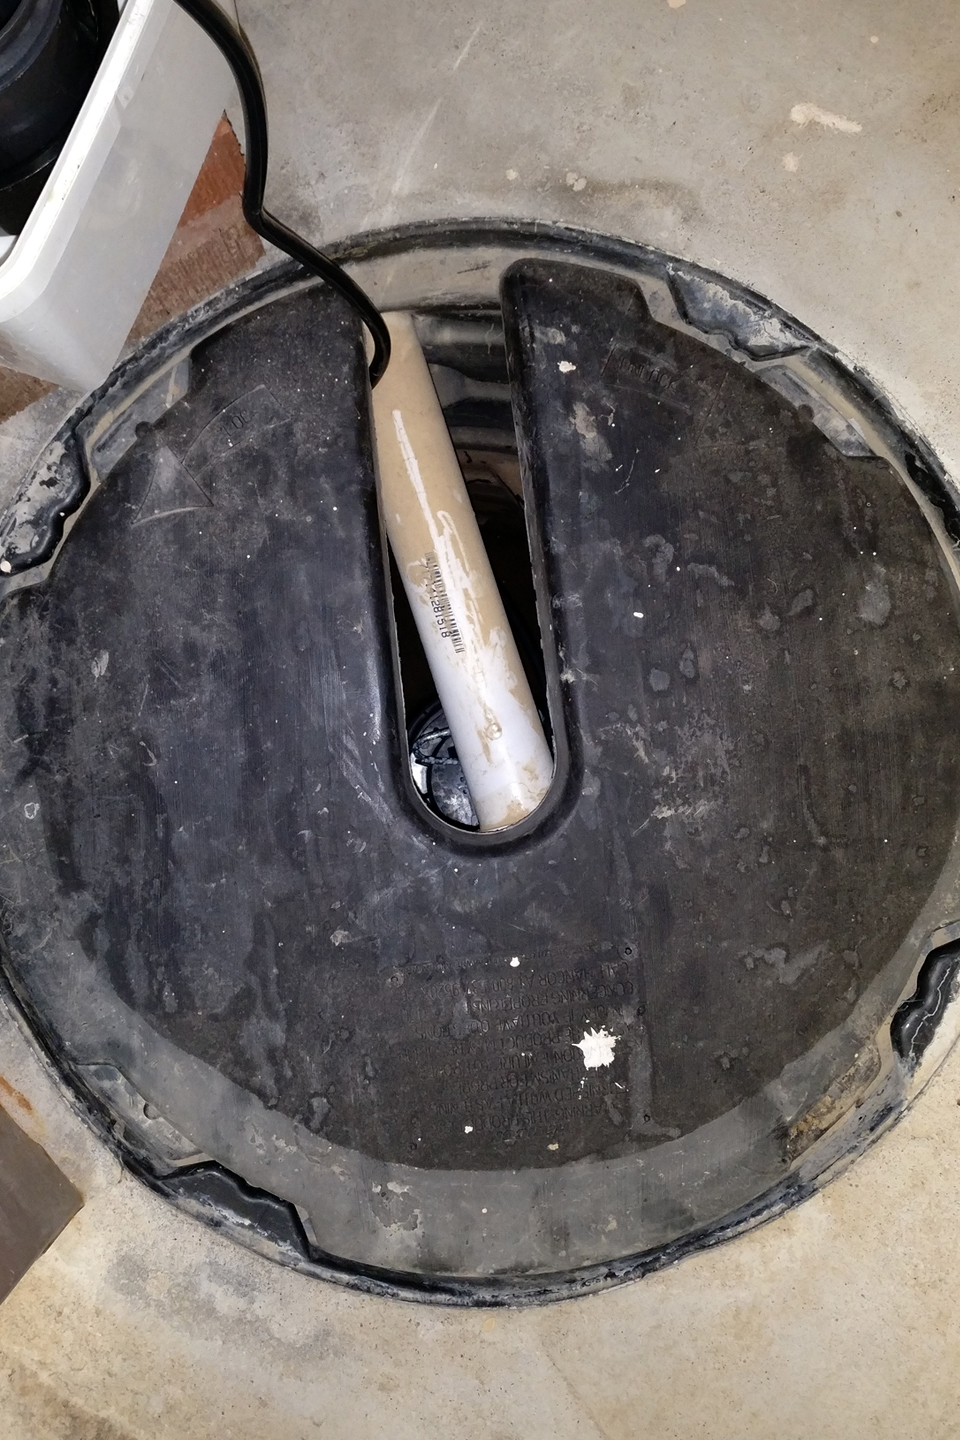 Sump pump with cover in basement